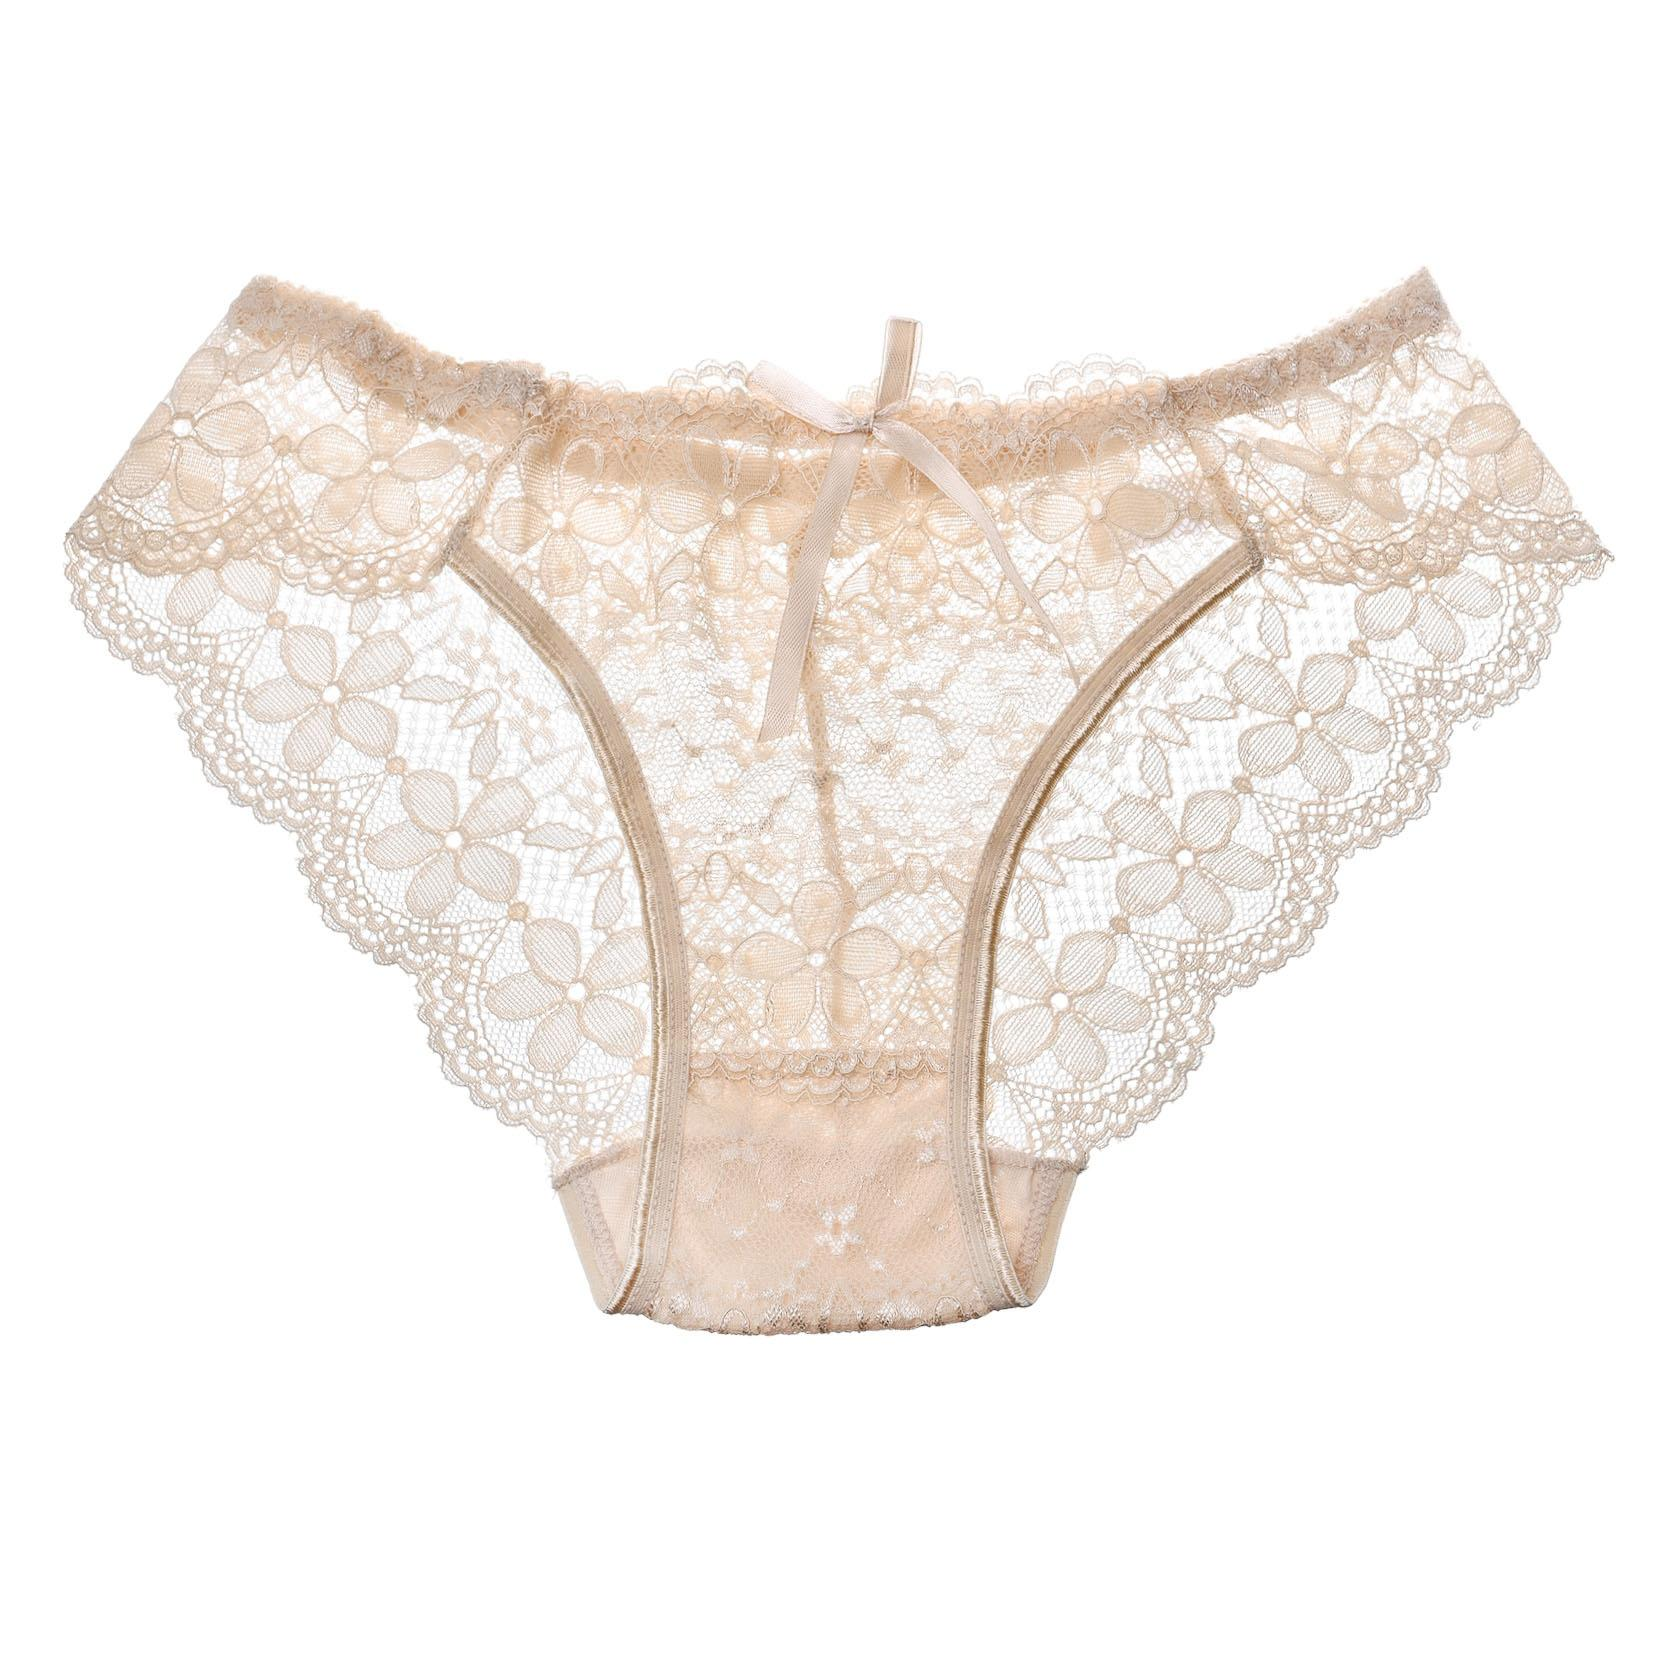 Hot Sale Sexy Lace Seamless Panties Underwear Women Breathable Panty Hollow Transparent Panties Brand Quality 2017